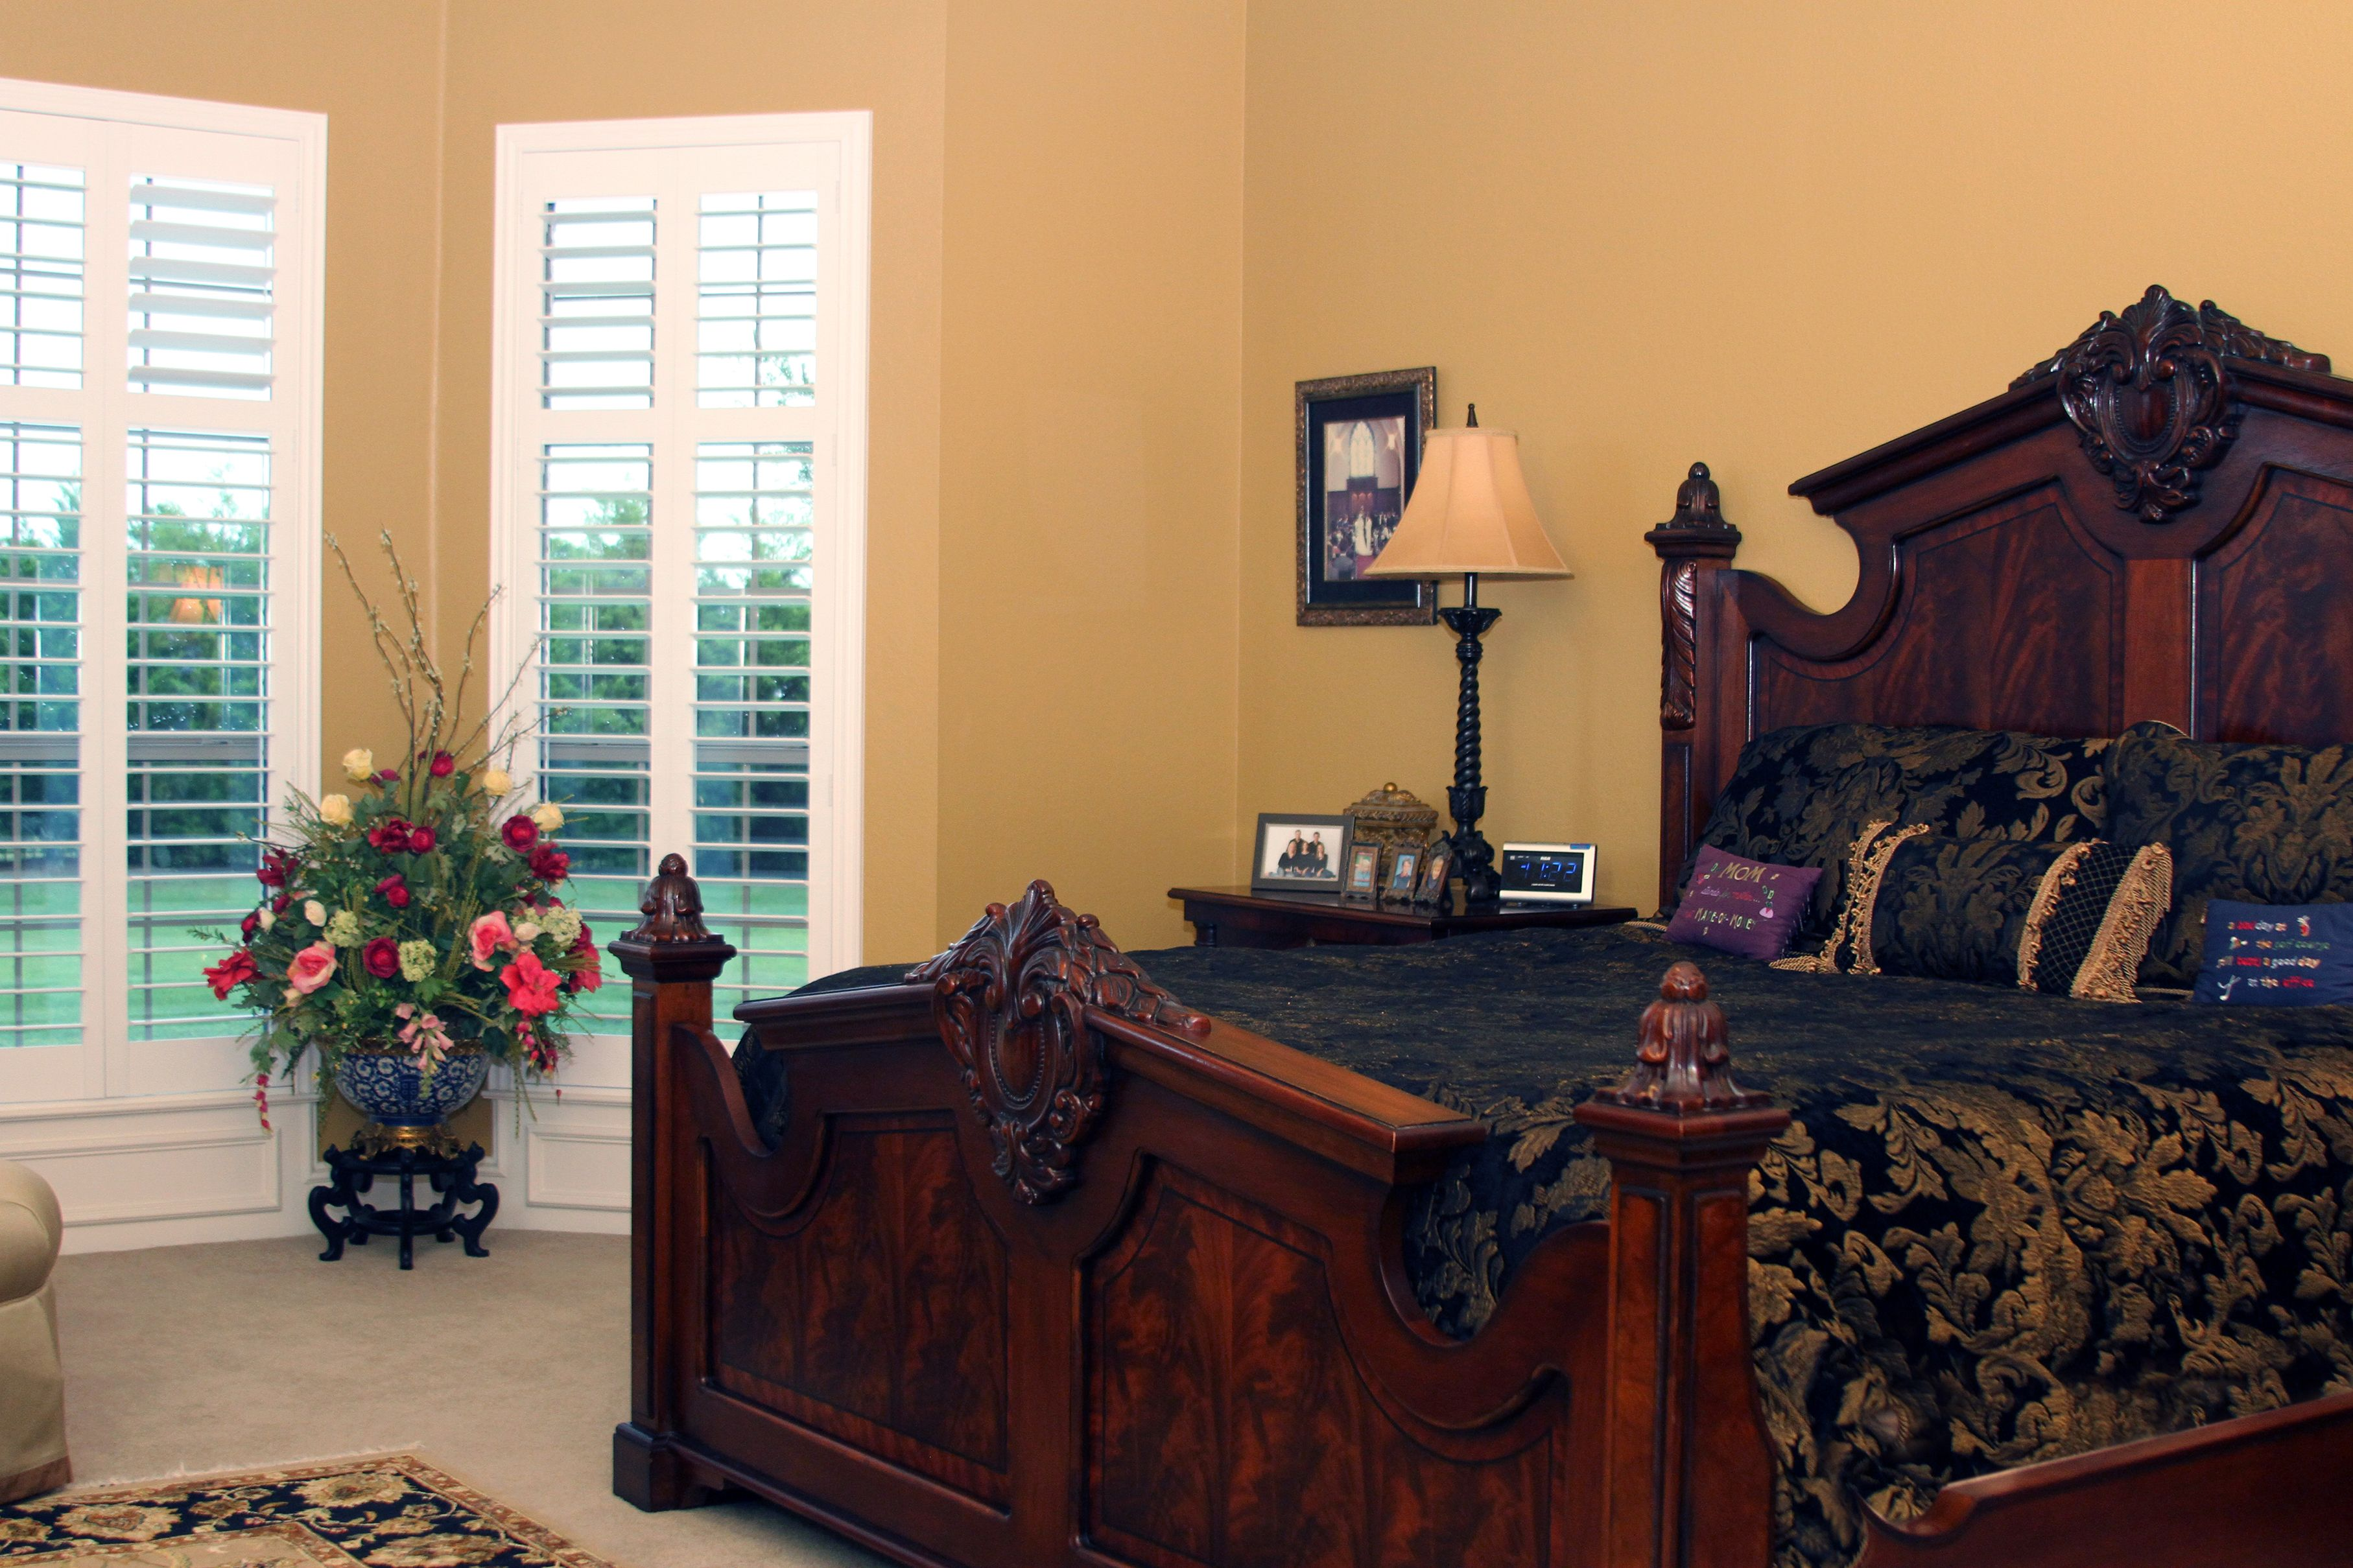 Rich medium gold walls bask a warm glow in this luxurious